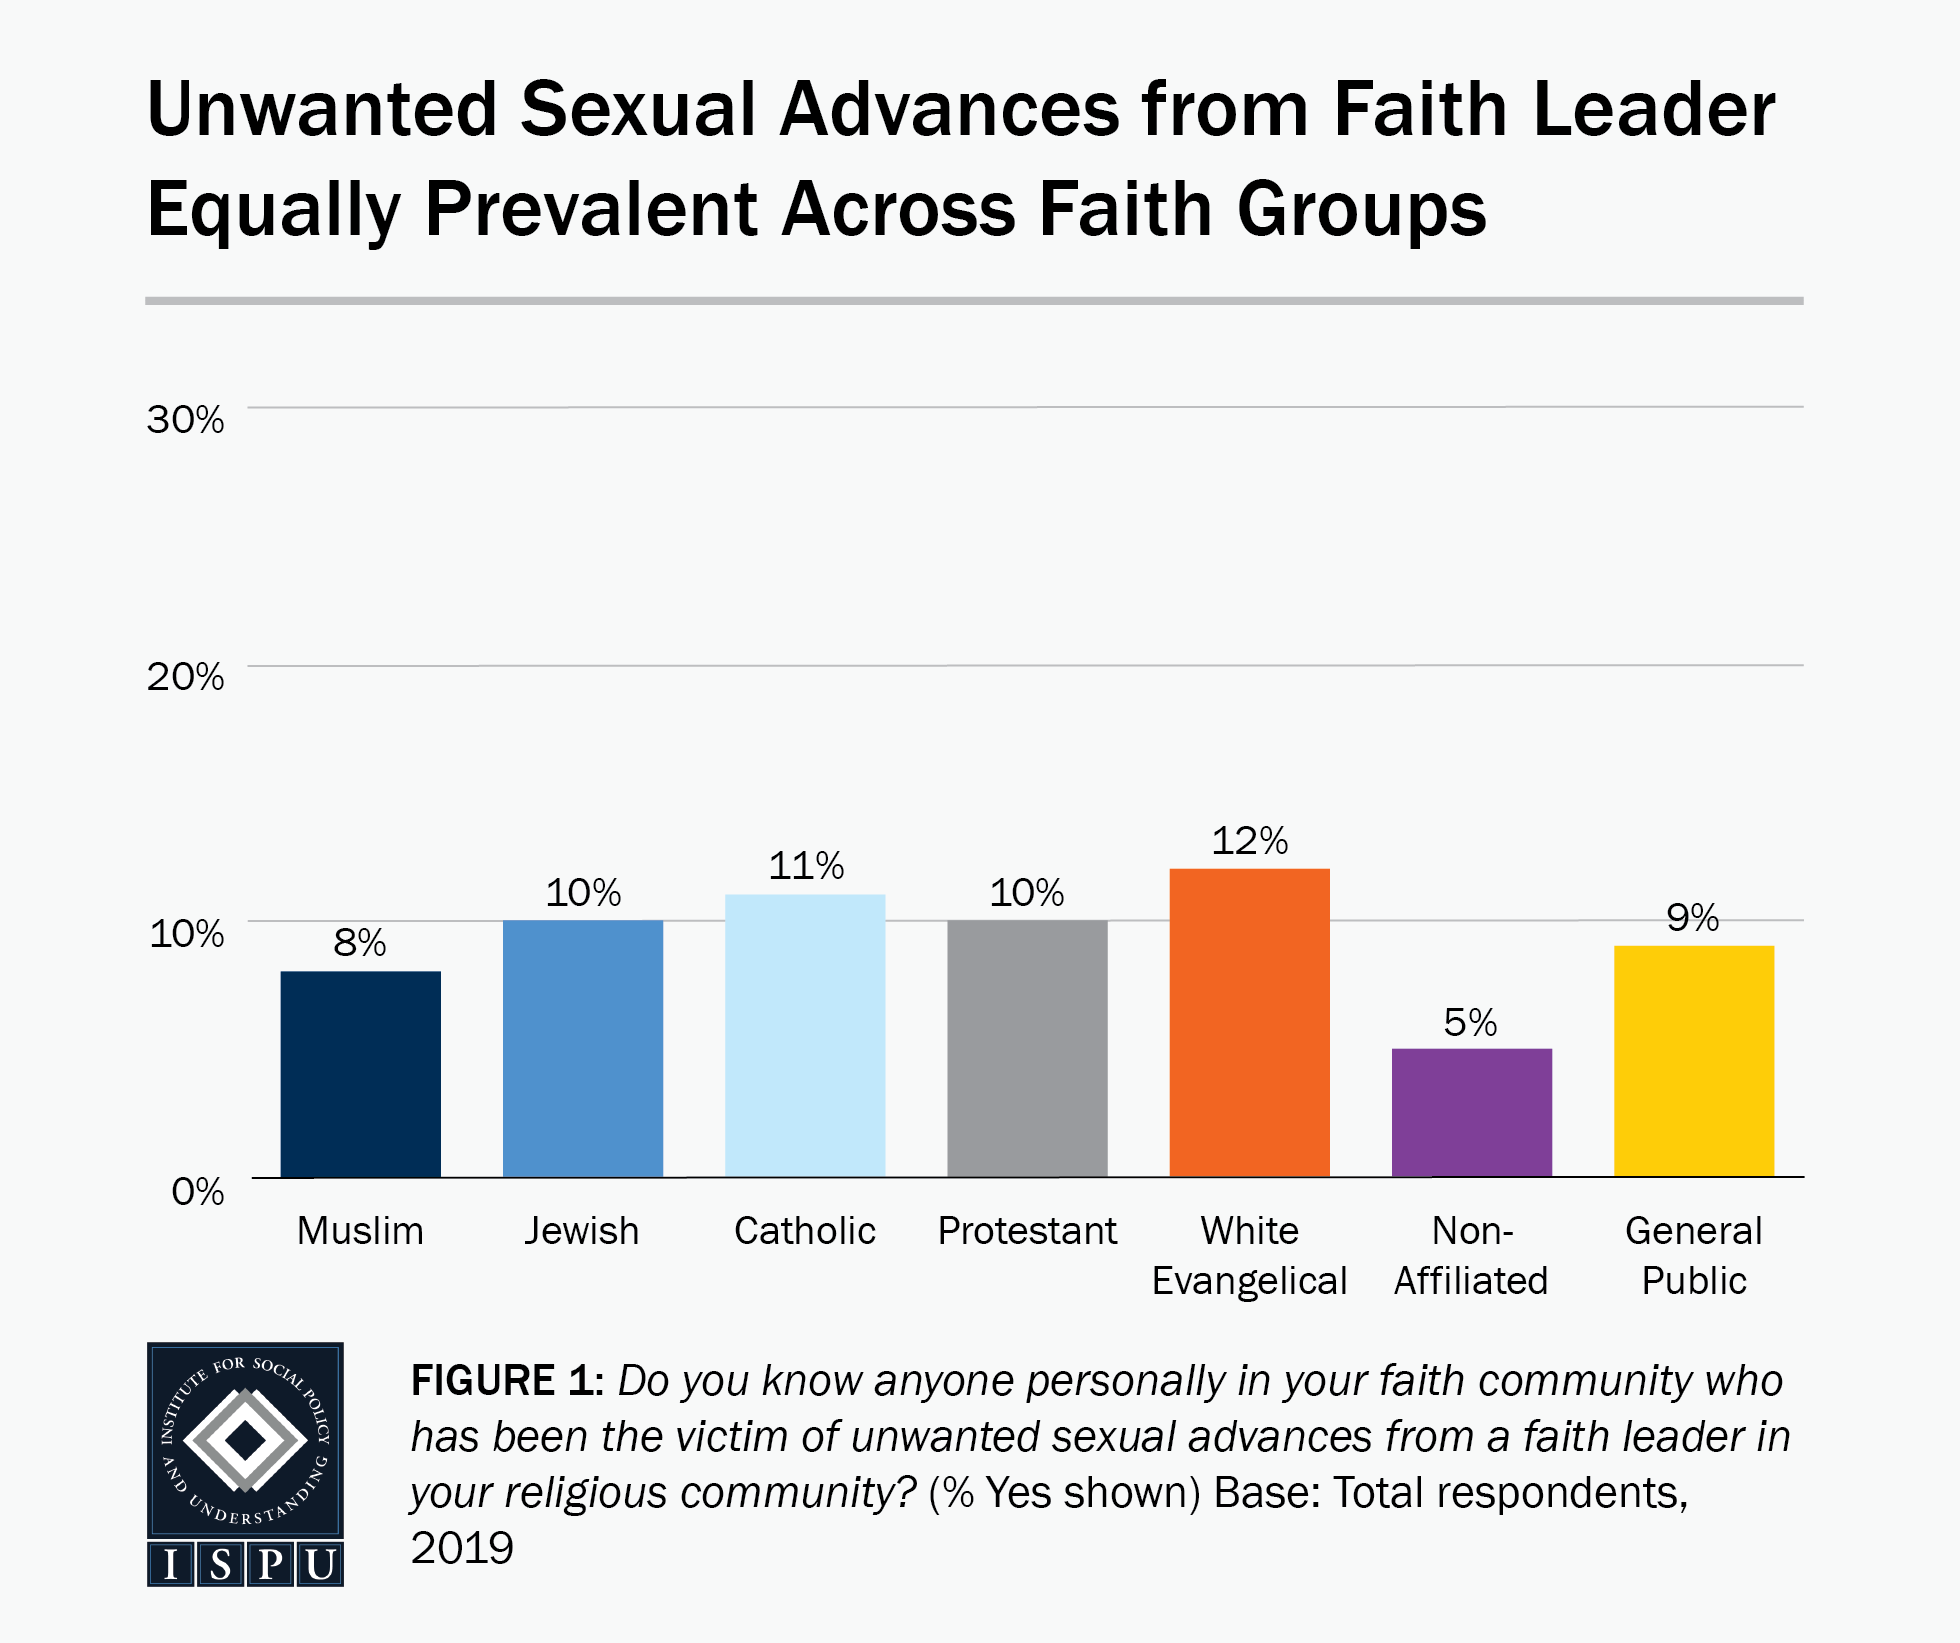 Figure 1: A bar graph showing that unwanted sexual advances from faith leaders are equally prevalent across faith groups